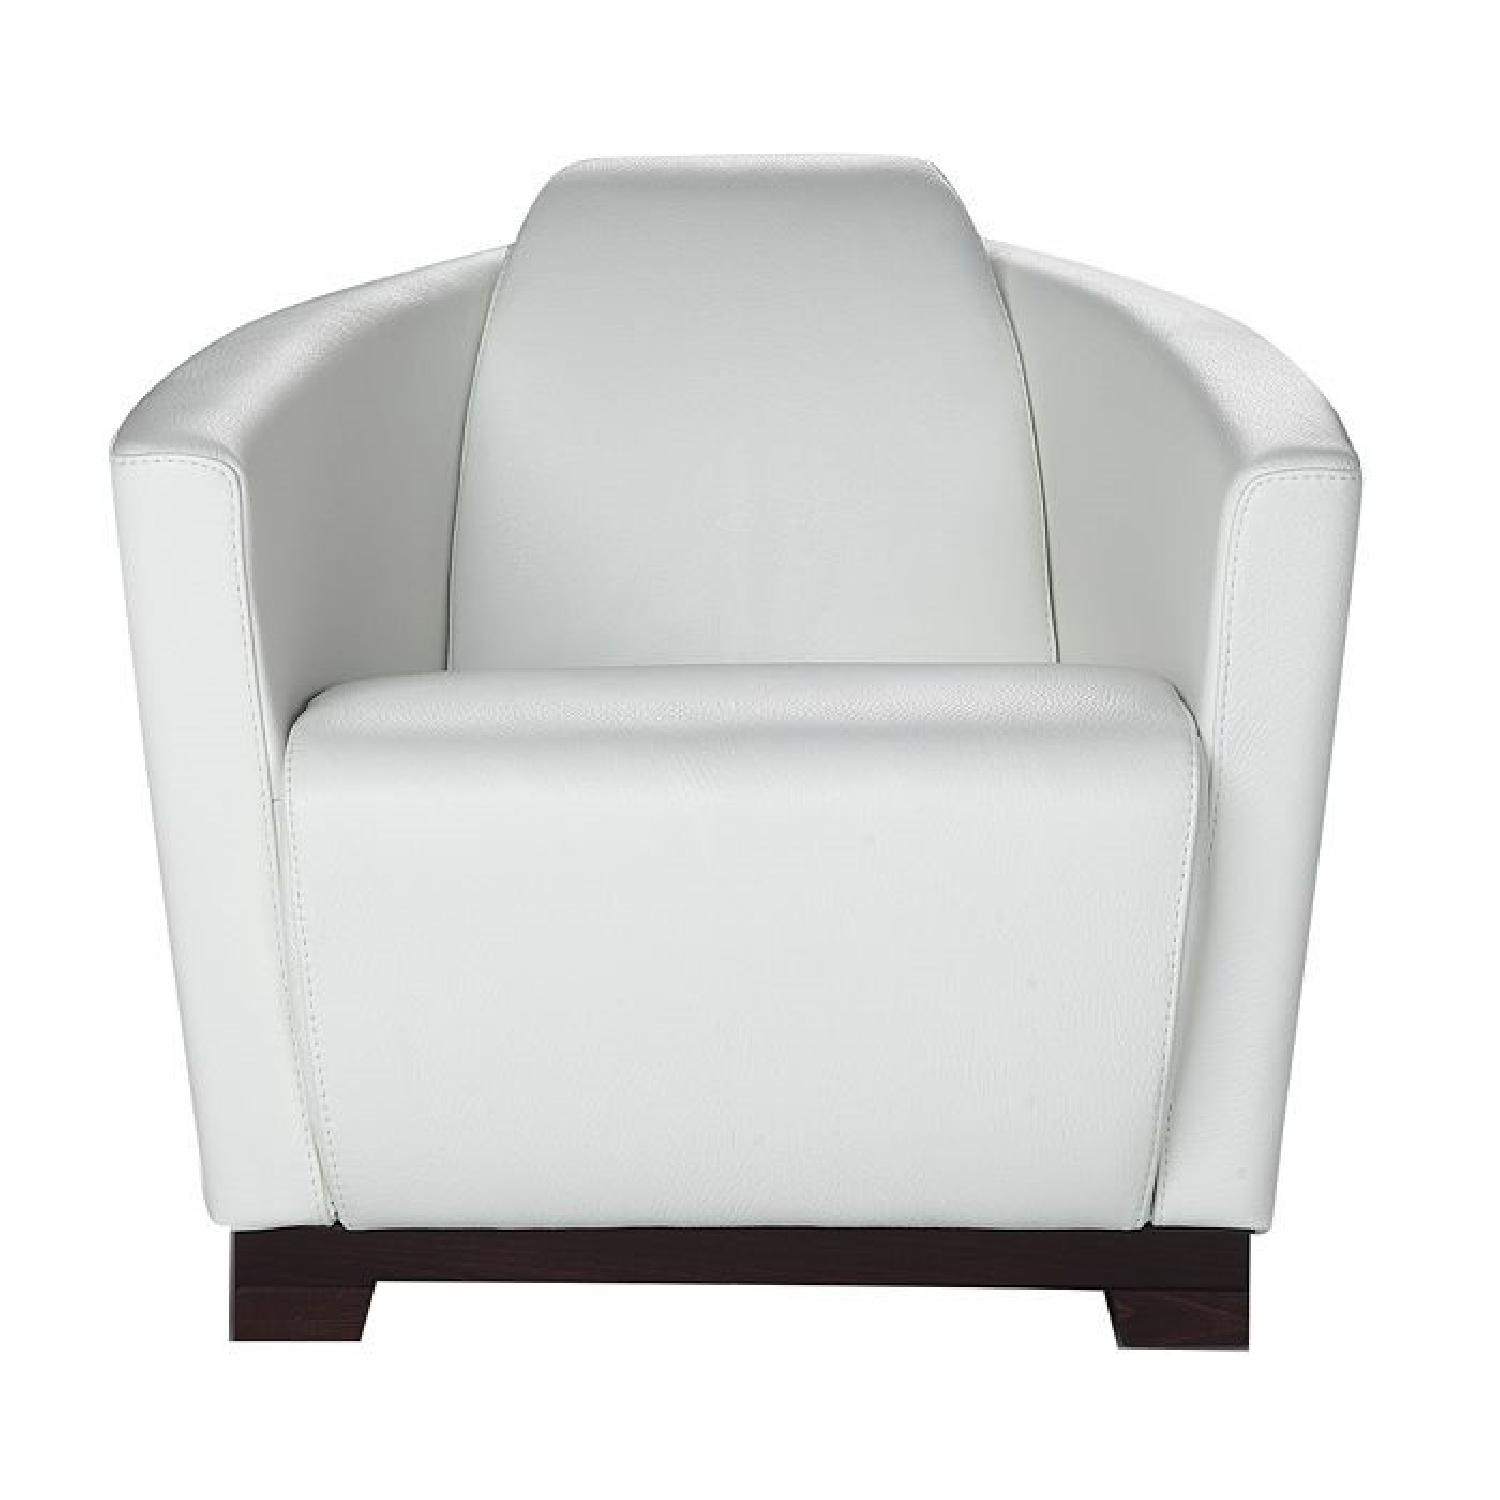 Nicoletti Hollister White Leather Armchair w/ Wood Base - image-0